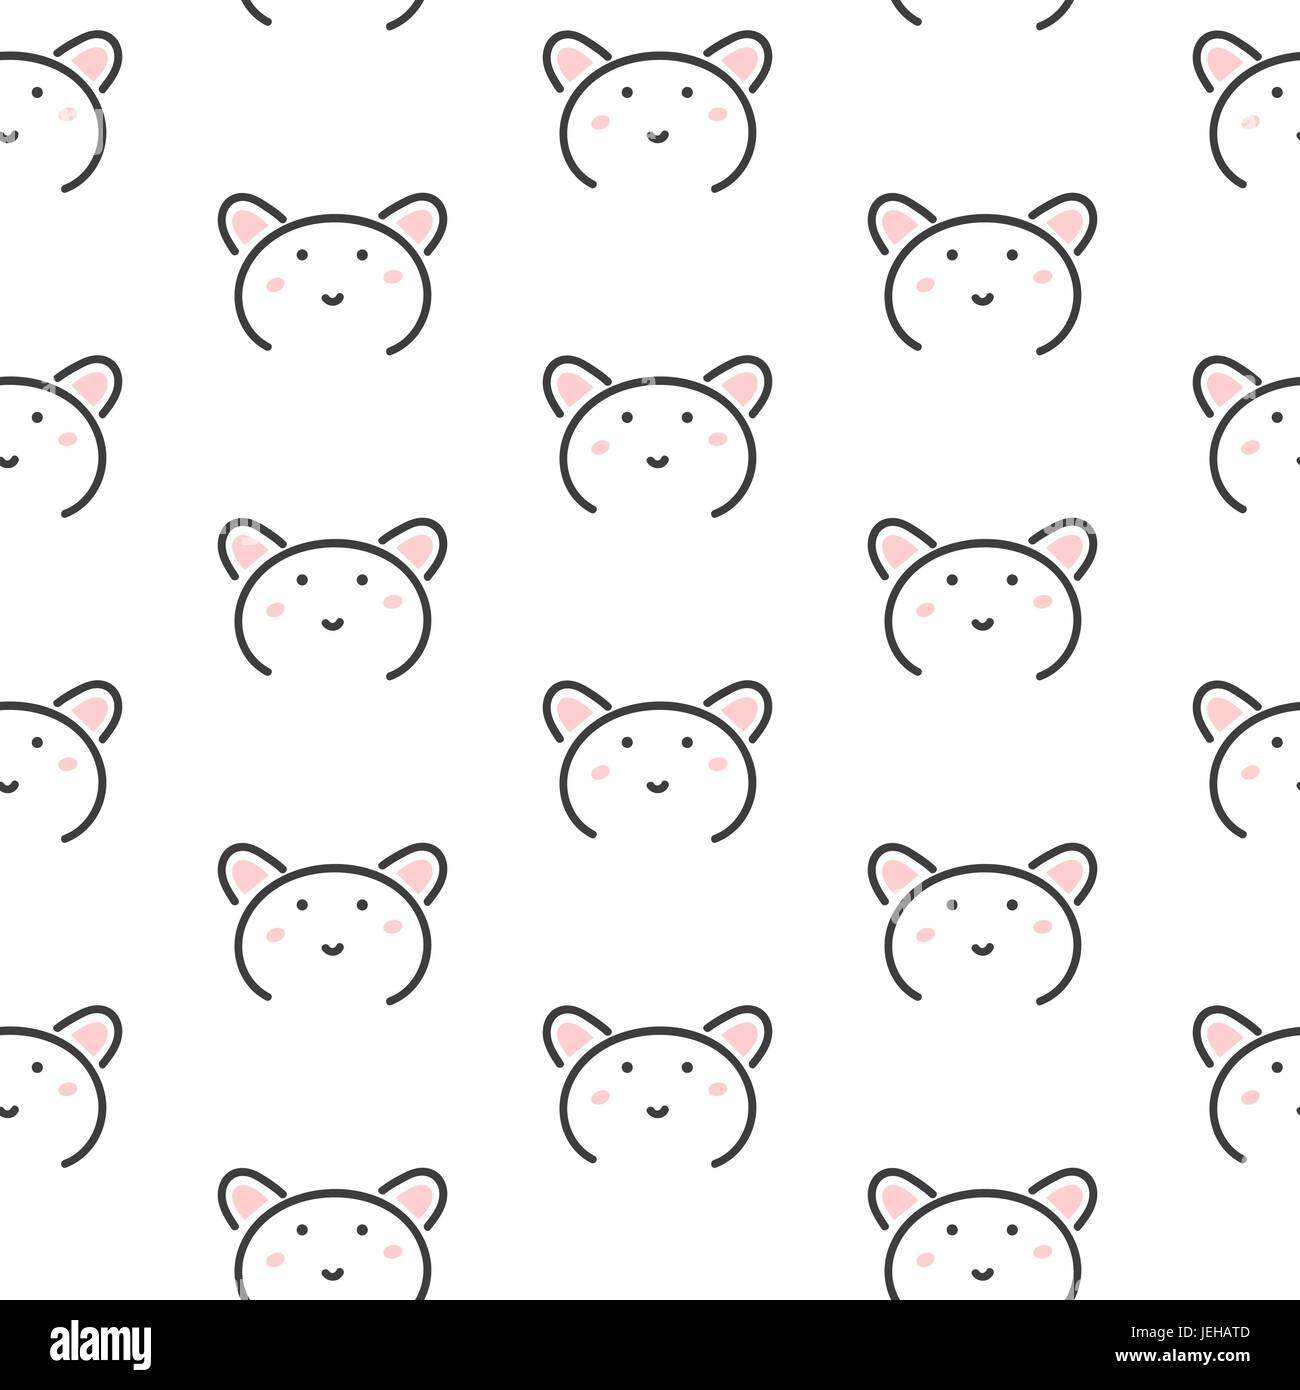 Bear stylized line fun seamless pattern for kids and babies. Stock Vector